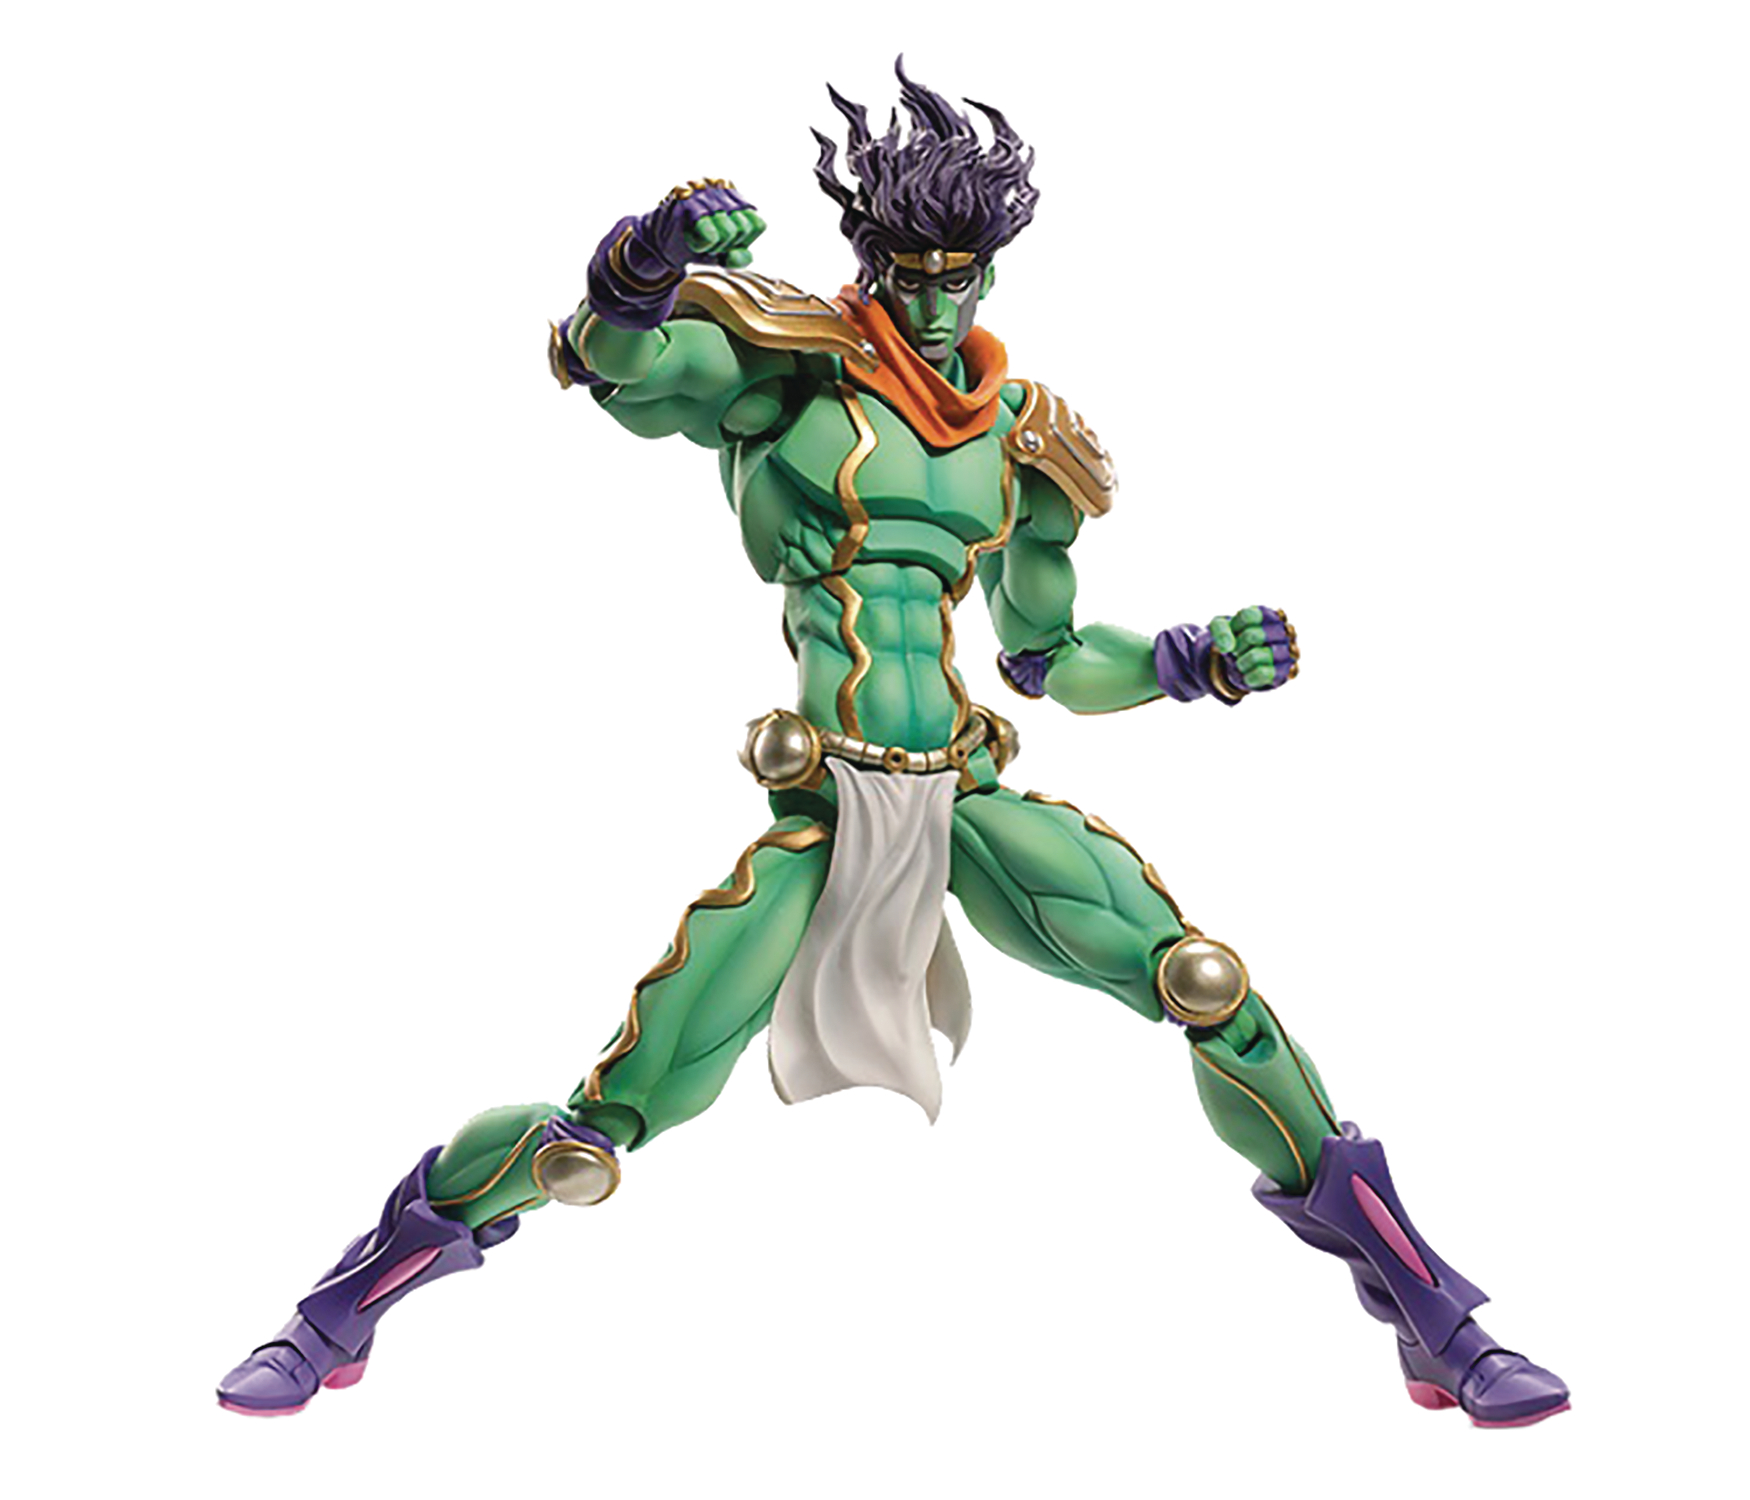 JOJOS BIZARRE ADV PART 3 STAR PLATINUM BIG SUPER ACTION FIG